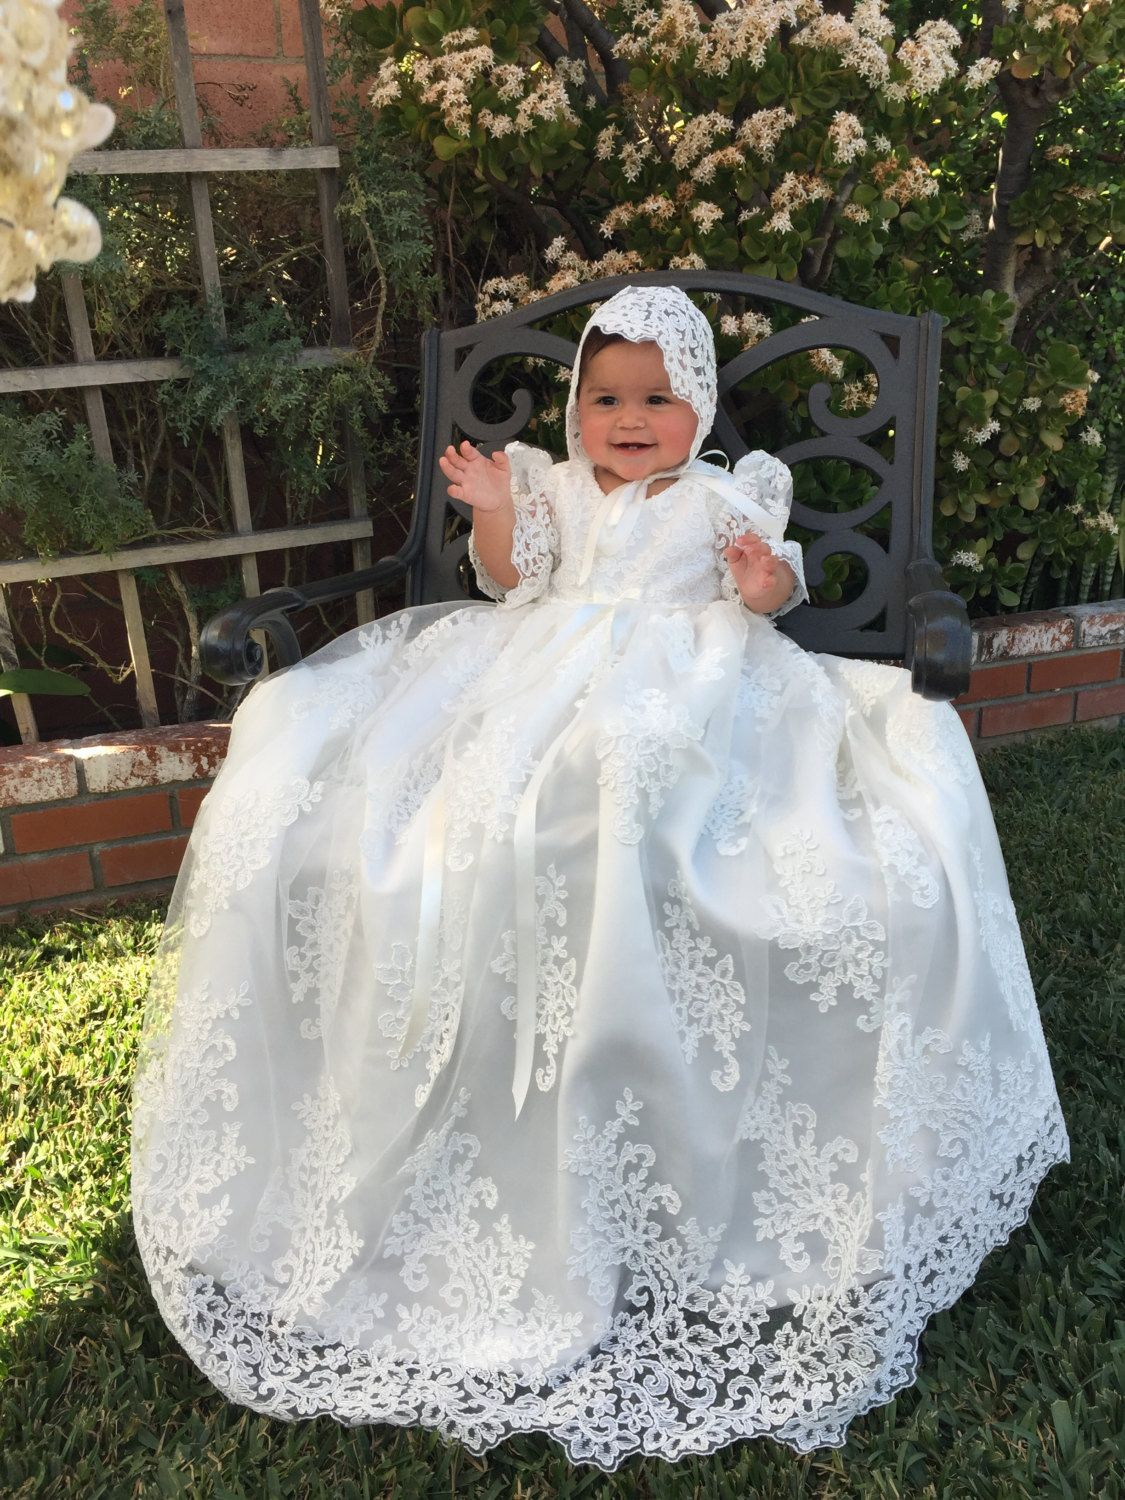 10947c14ebf1 Stunning Alencon Lace Christening Gown Baptism dress by Caremour